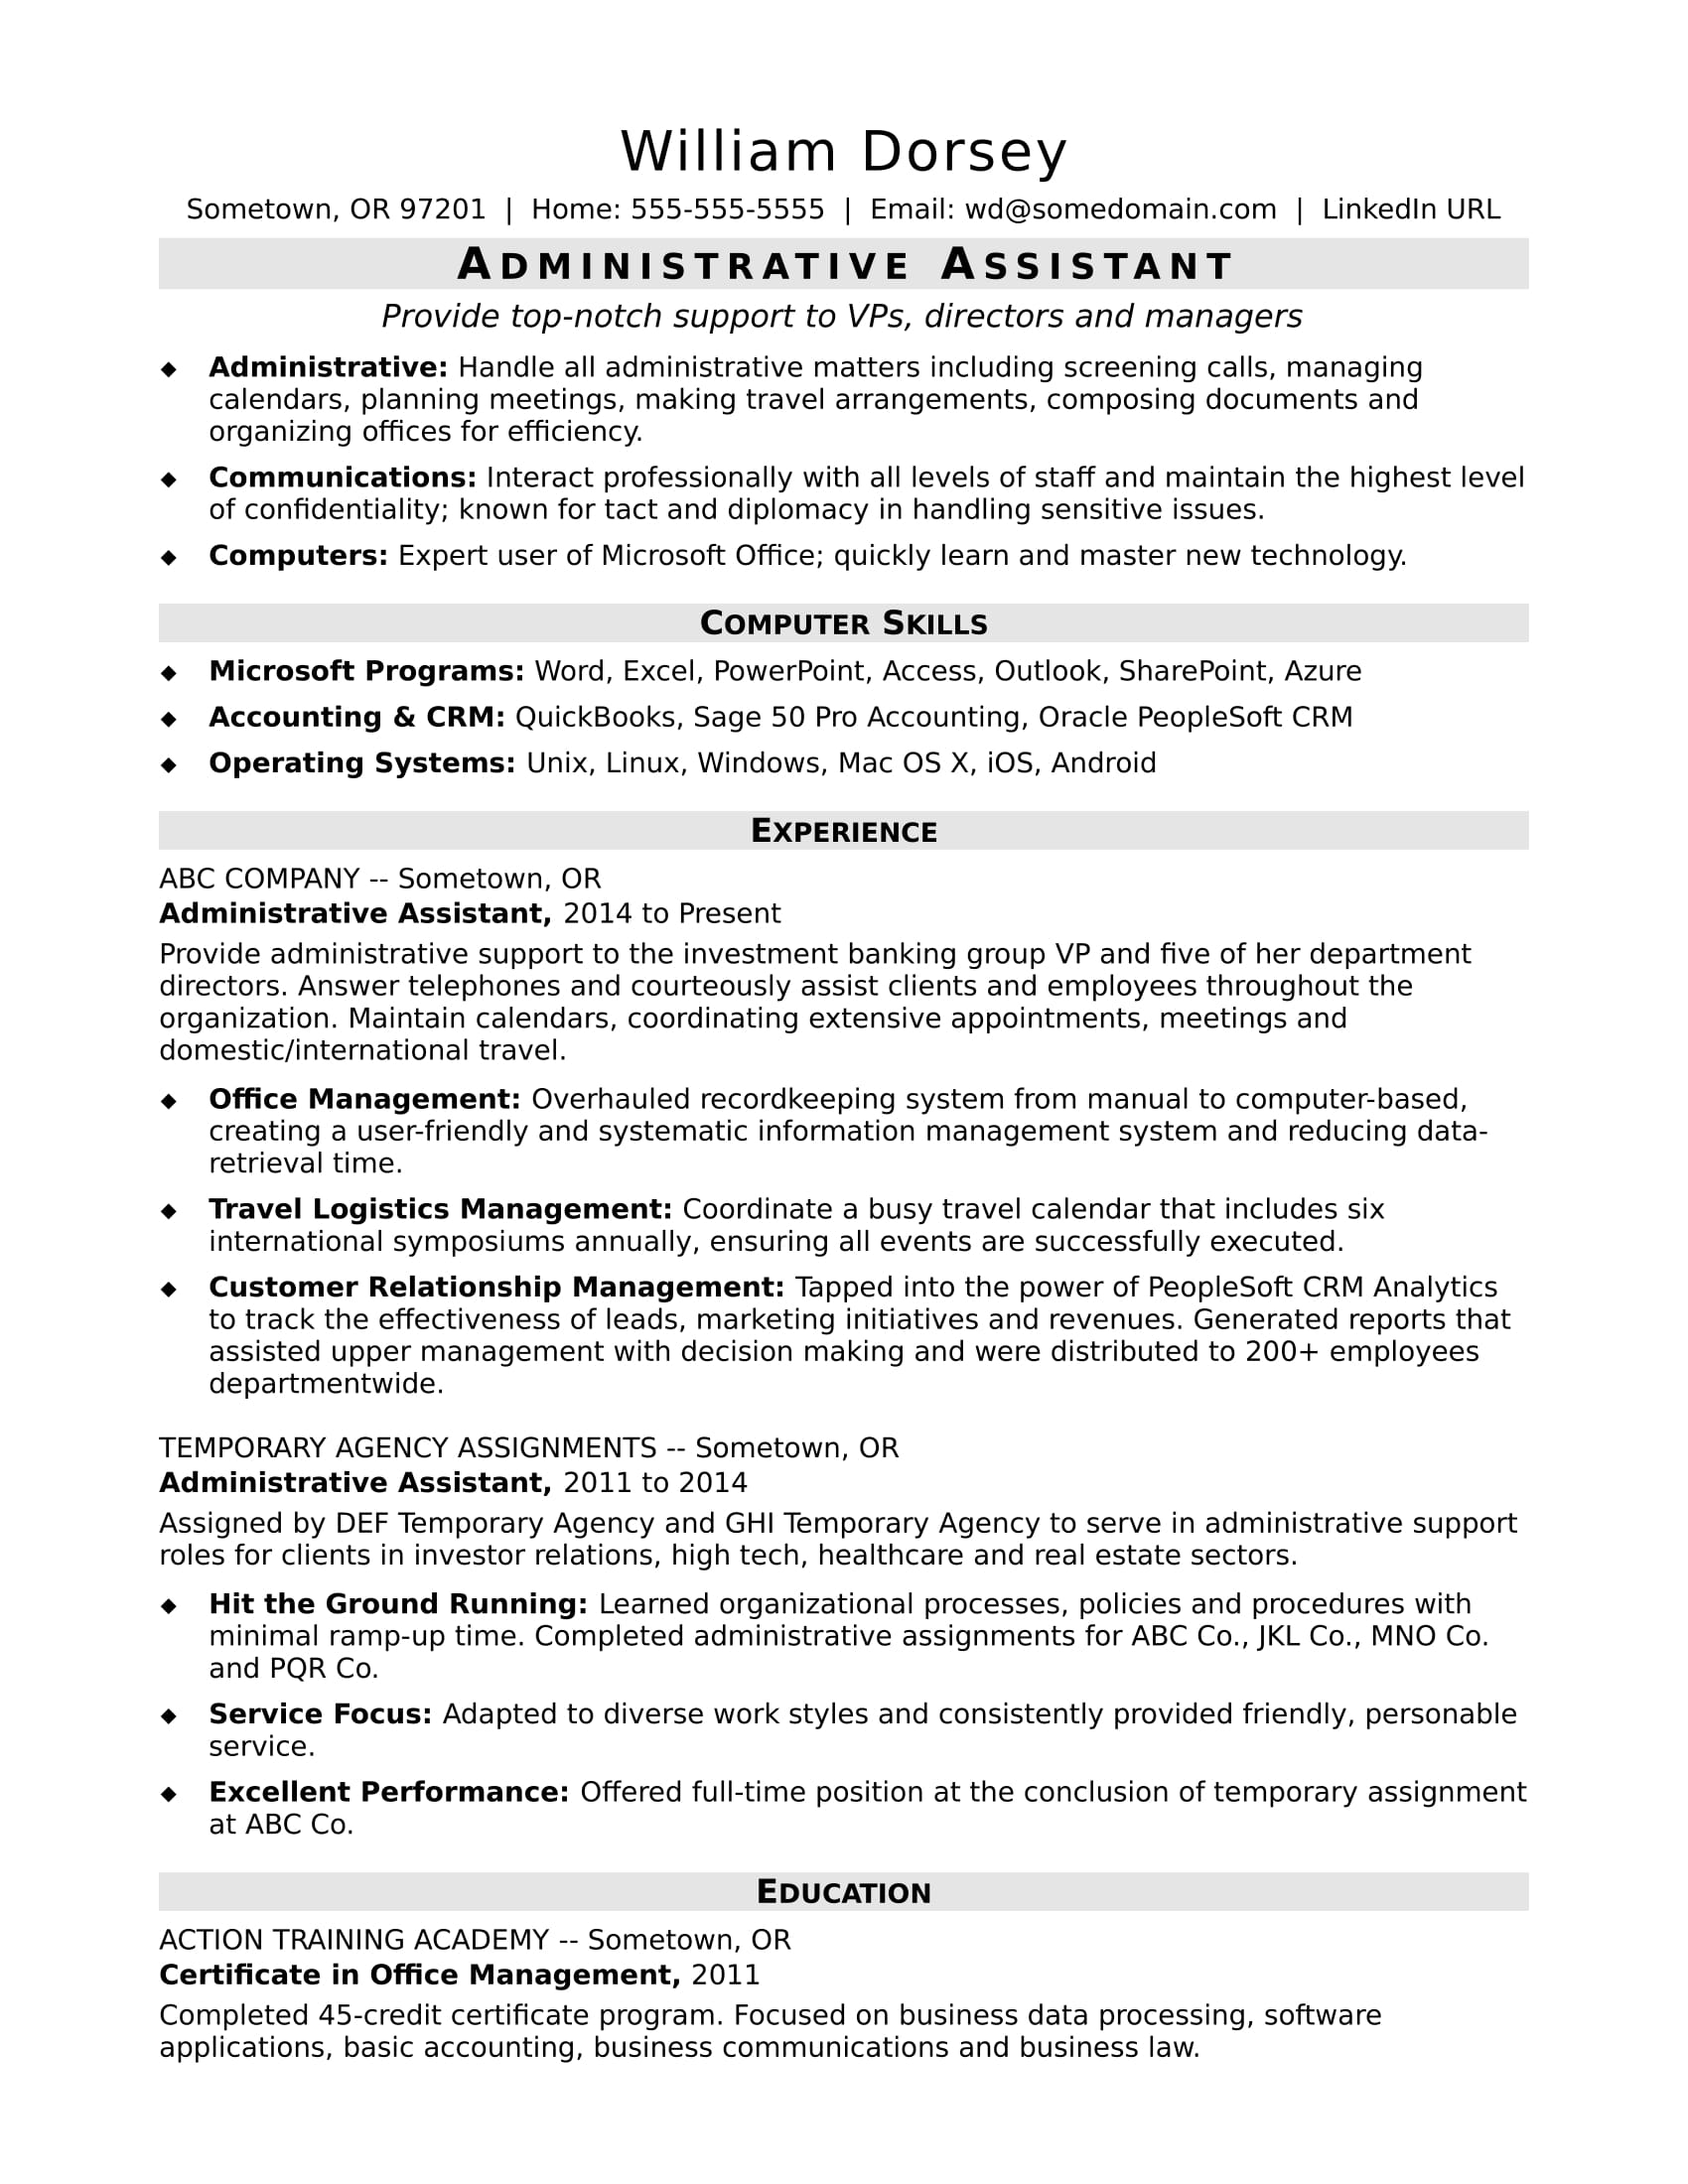 midlevel administrative assistant resume sample monster experienced executive business Resume Experienced Executive Assistant Resume